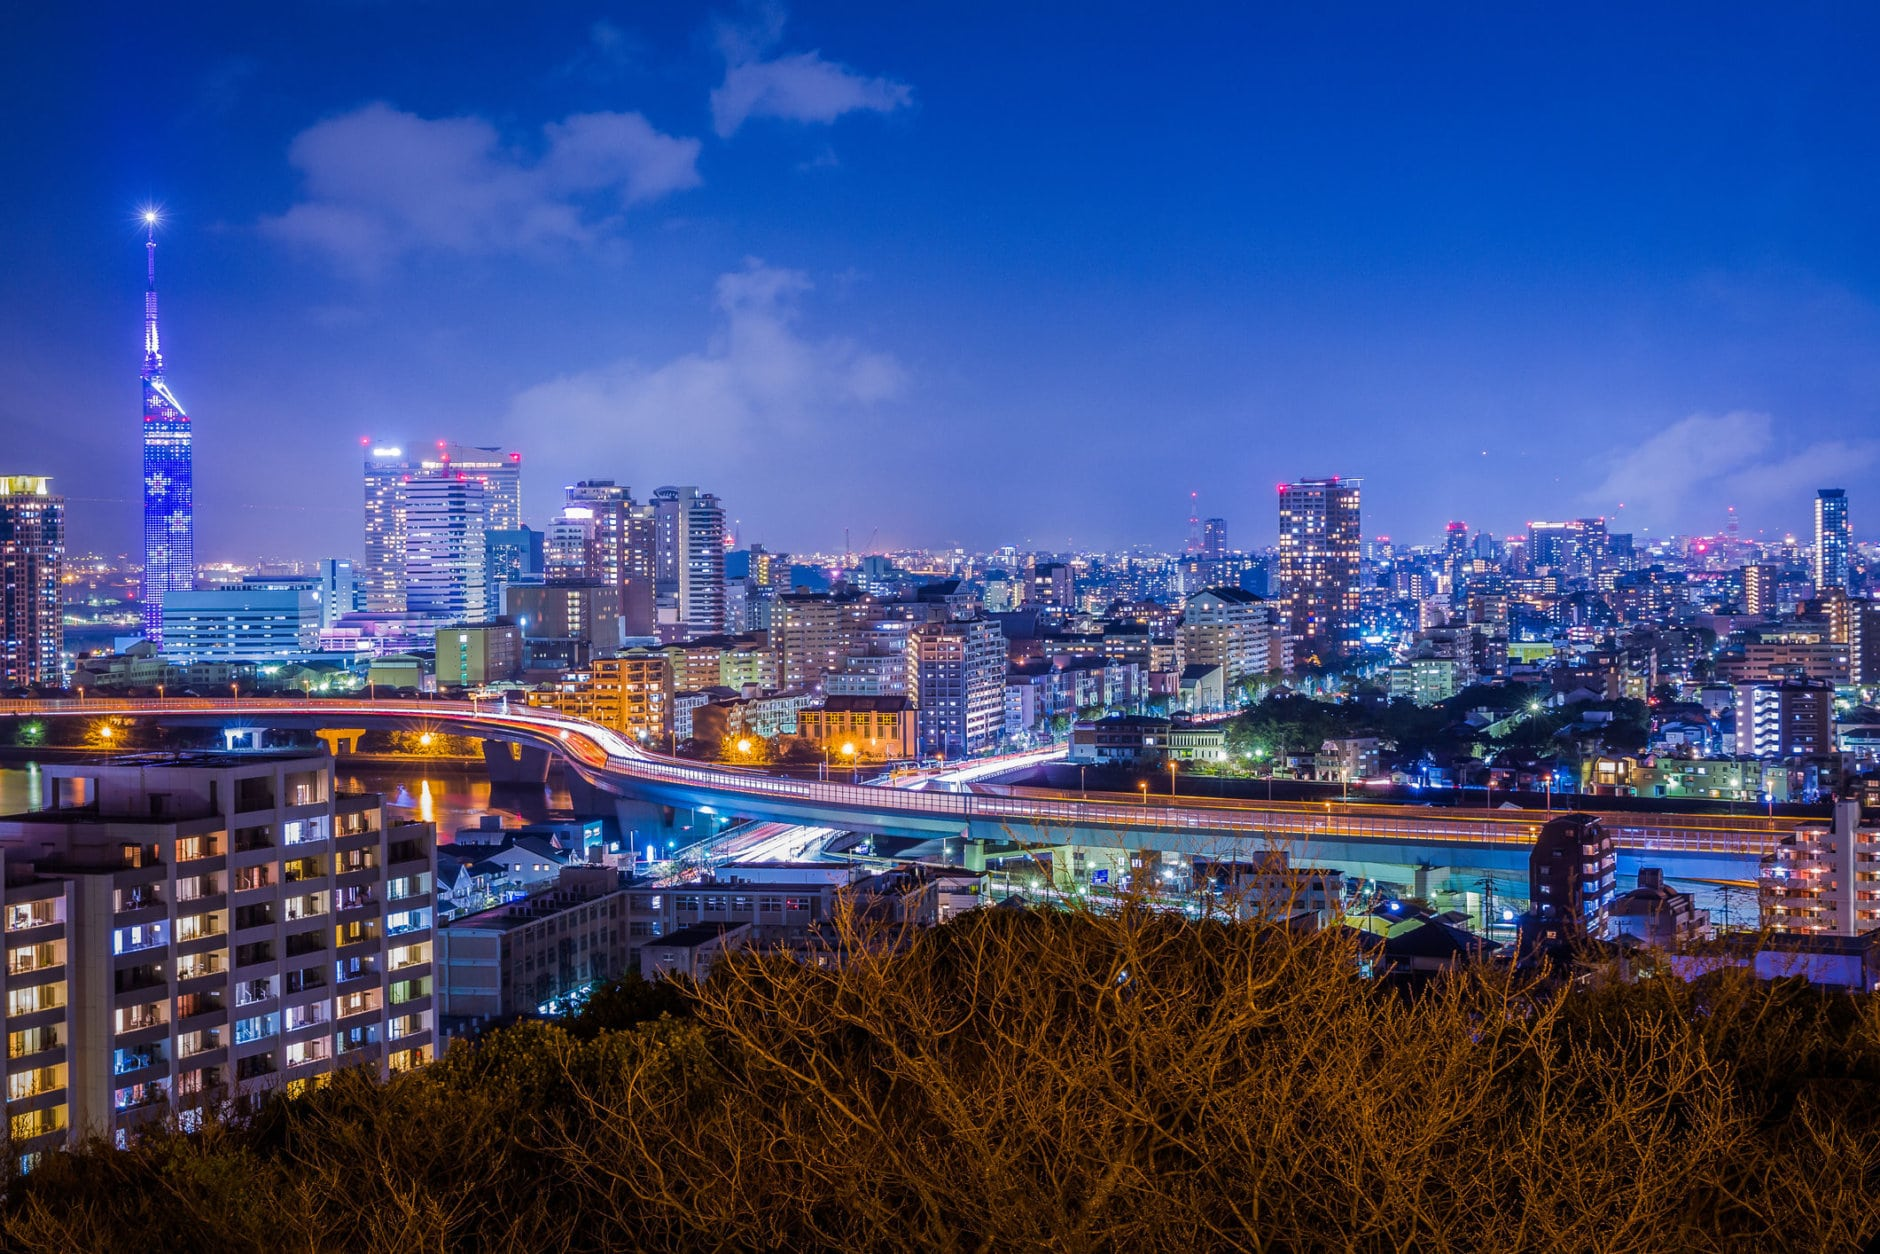 Night view of Fukuoka City in early spring featuring Fukuoka Tower, Momochi, Ohori Park, the Muromi River and the urban expressway. (Getty Images/iStockphoto/Biscut)